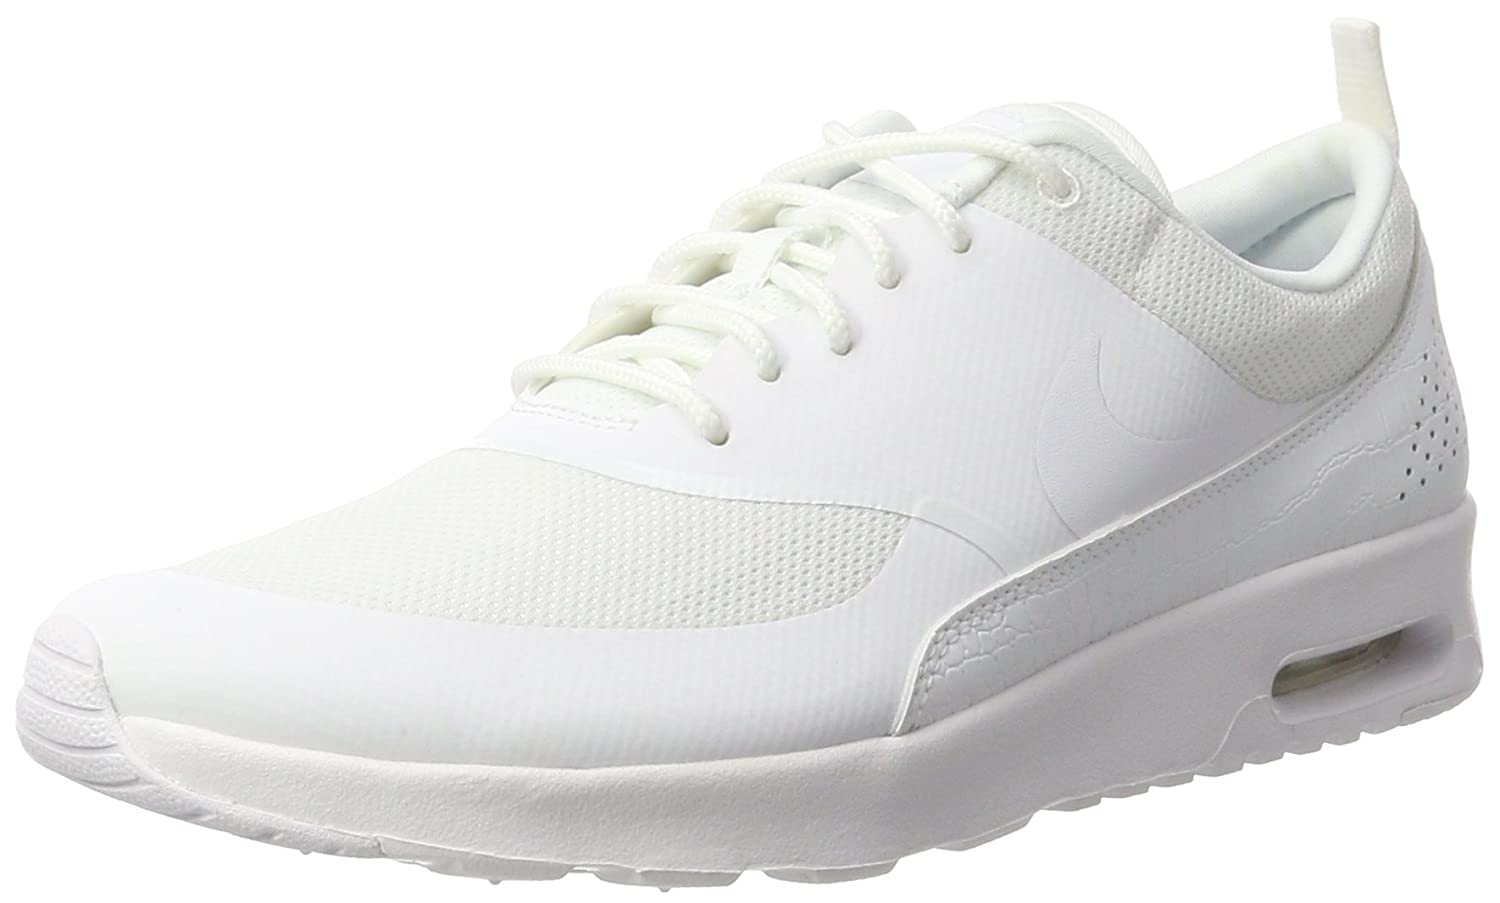 super popular performance sportswear affordable price Nike Air Max Thea